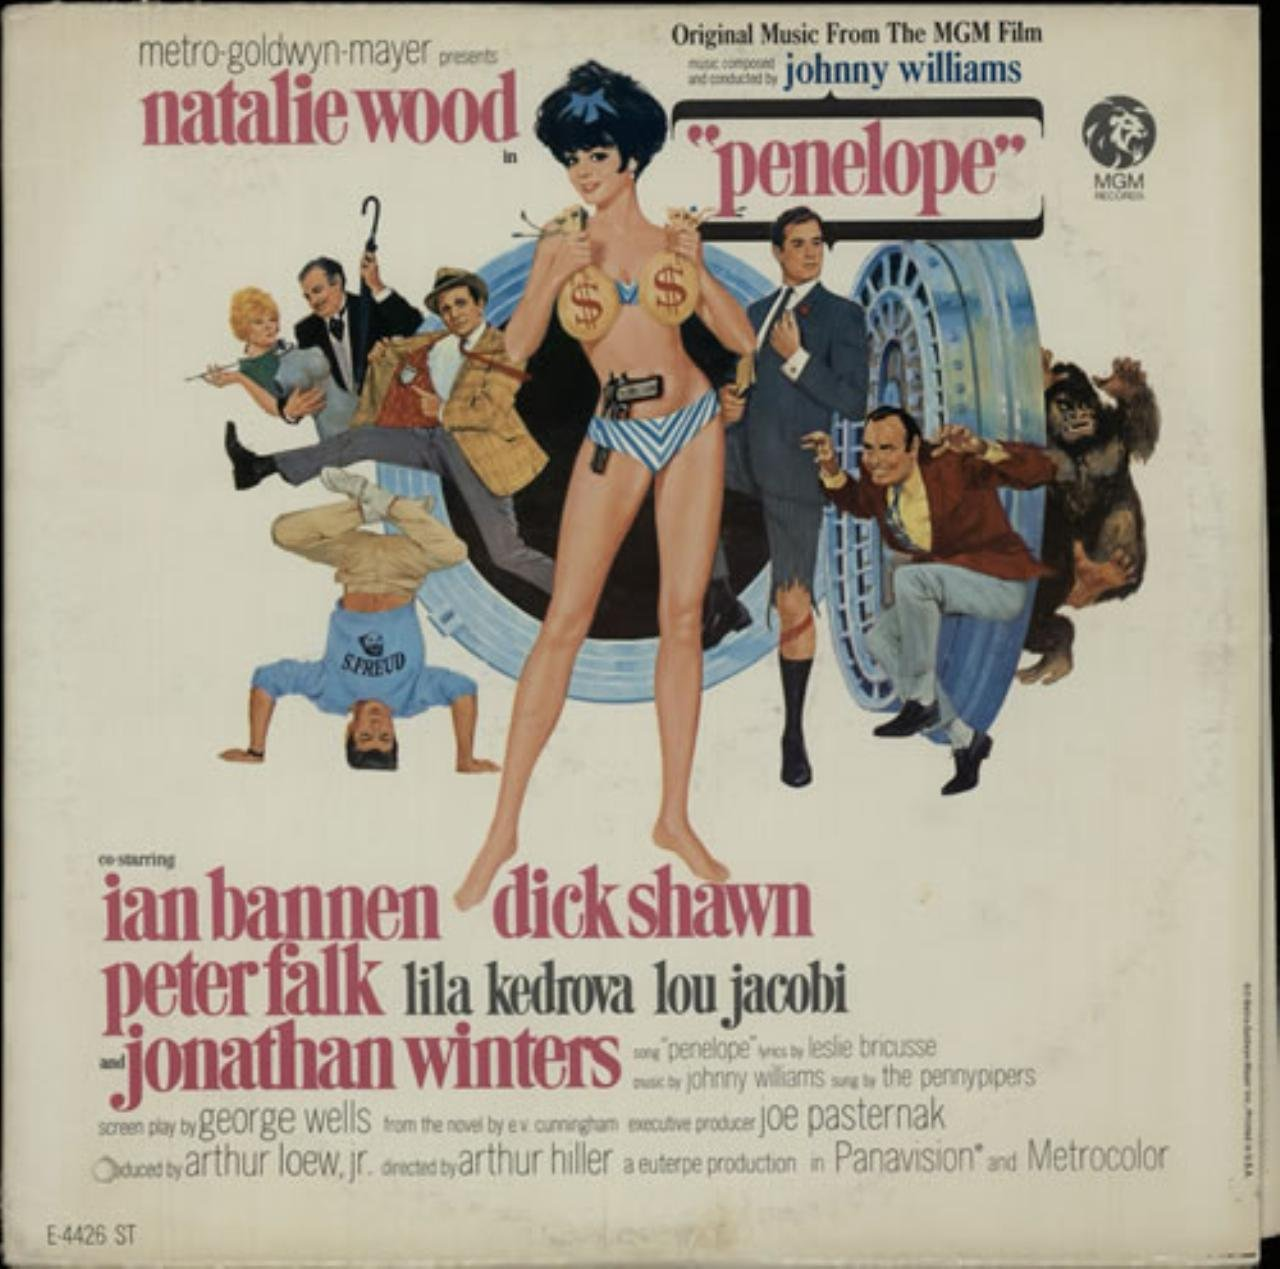 Original Music From The MGM Film Penelope